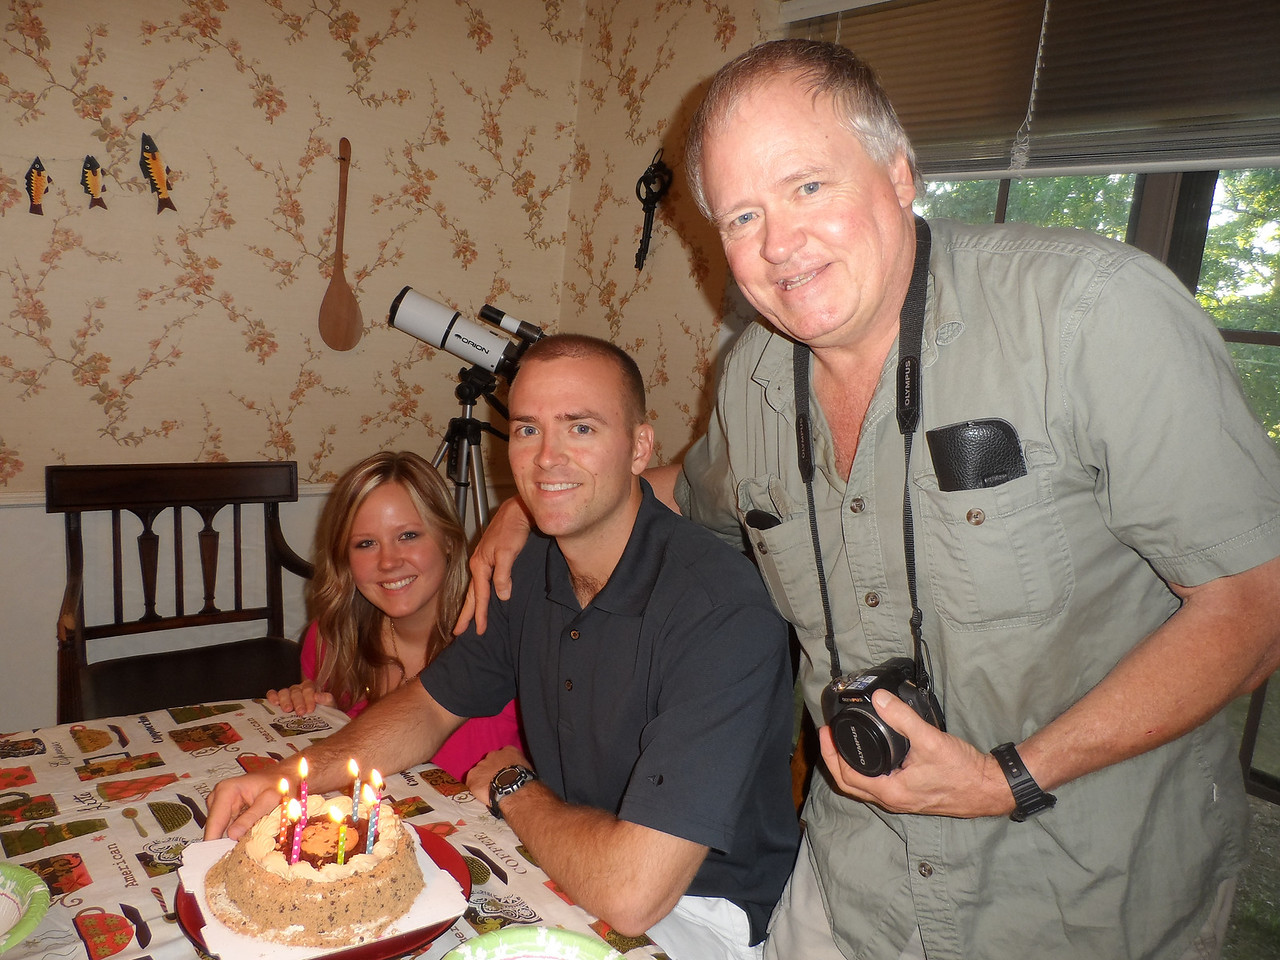 Katie, Luke, and Dad, pose with Luke's ice cream cake.